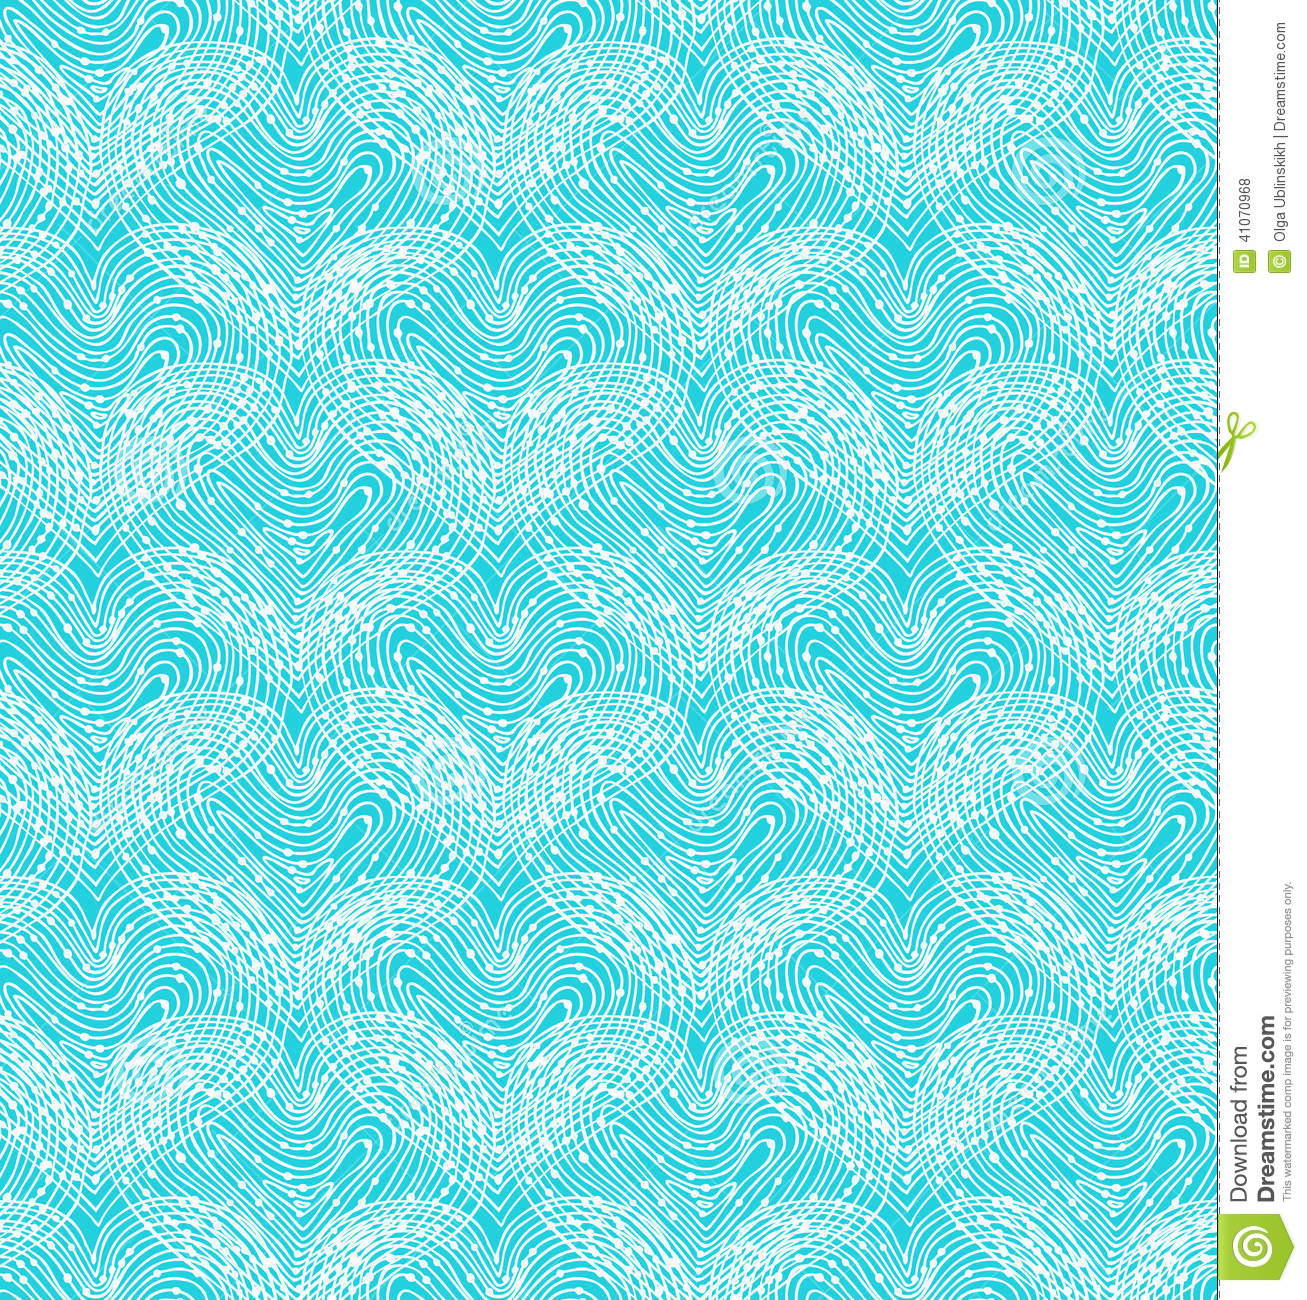 Turquoise Seamless Pattern With Linear Hearts Decorative